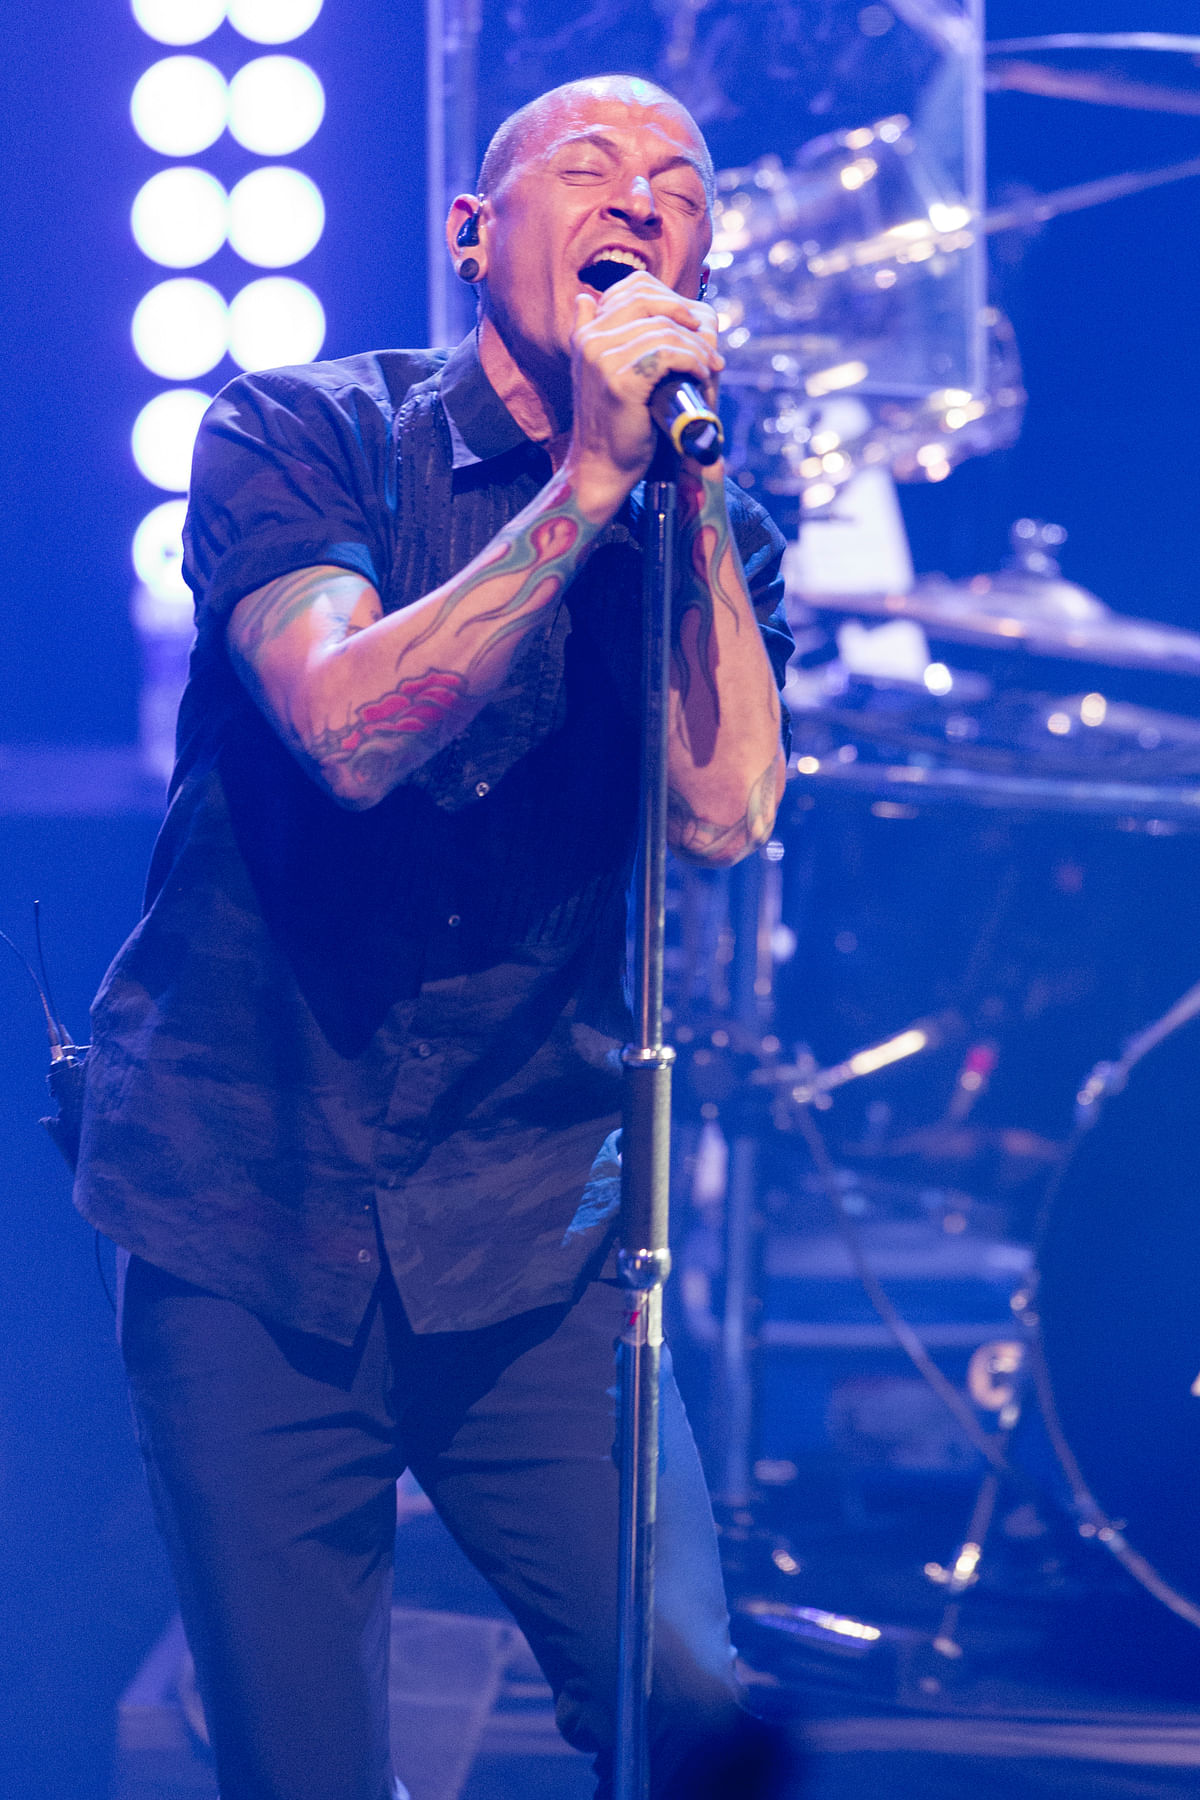 Chester Bennington of Linkin Park performs during the iHeartRadio Live Series in Burbank, Calif.